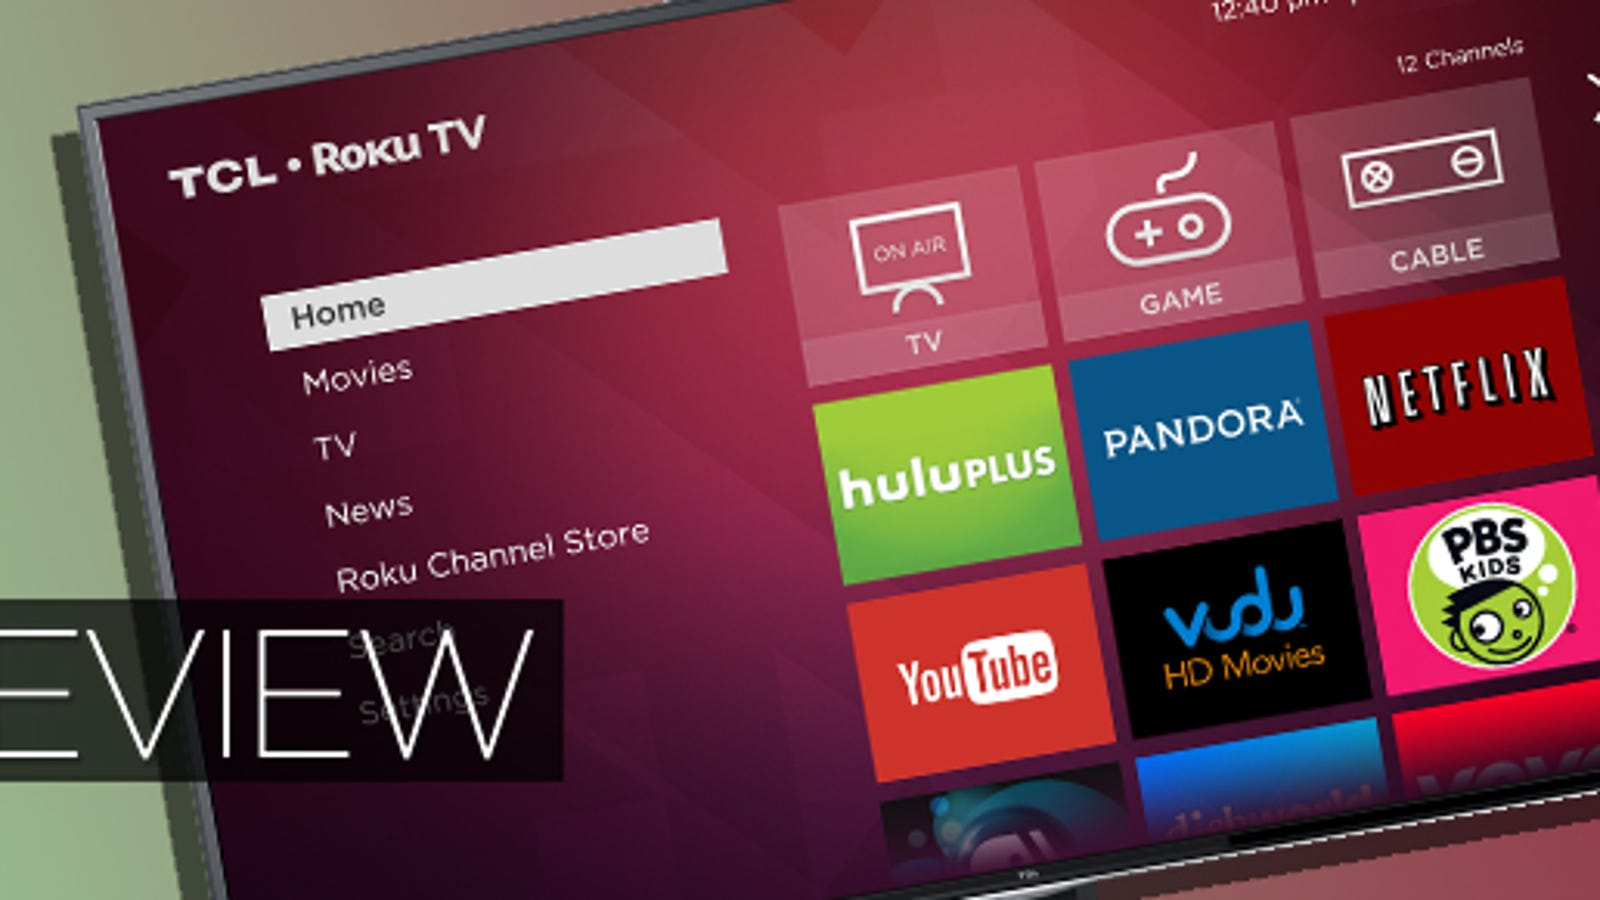 TCL Roku TV Review: A Decent Smart TV for a Great Price